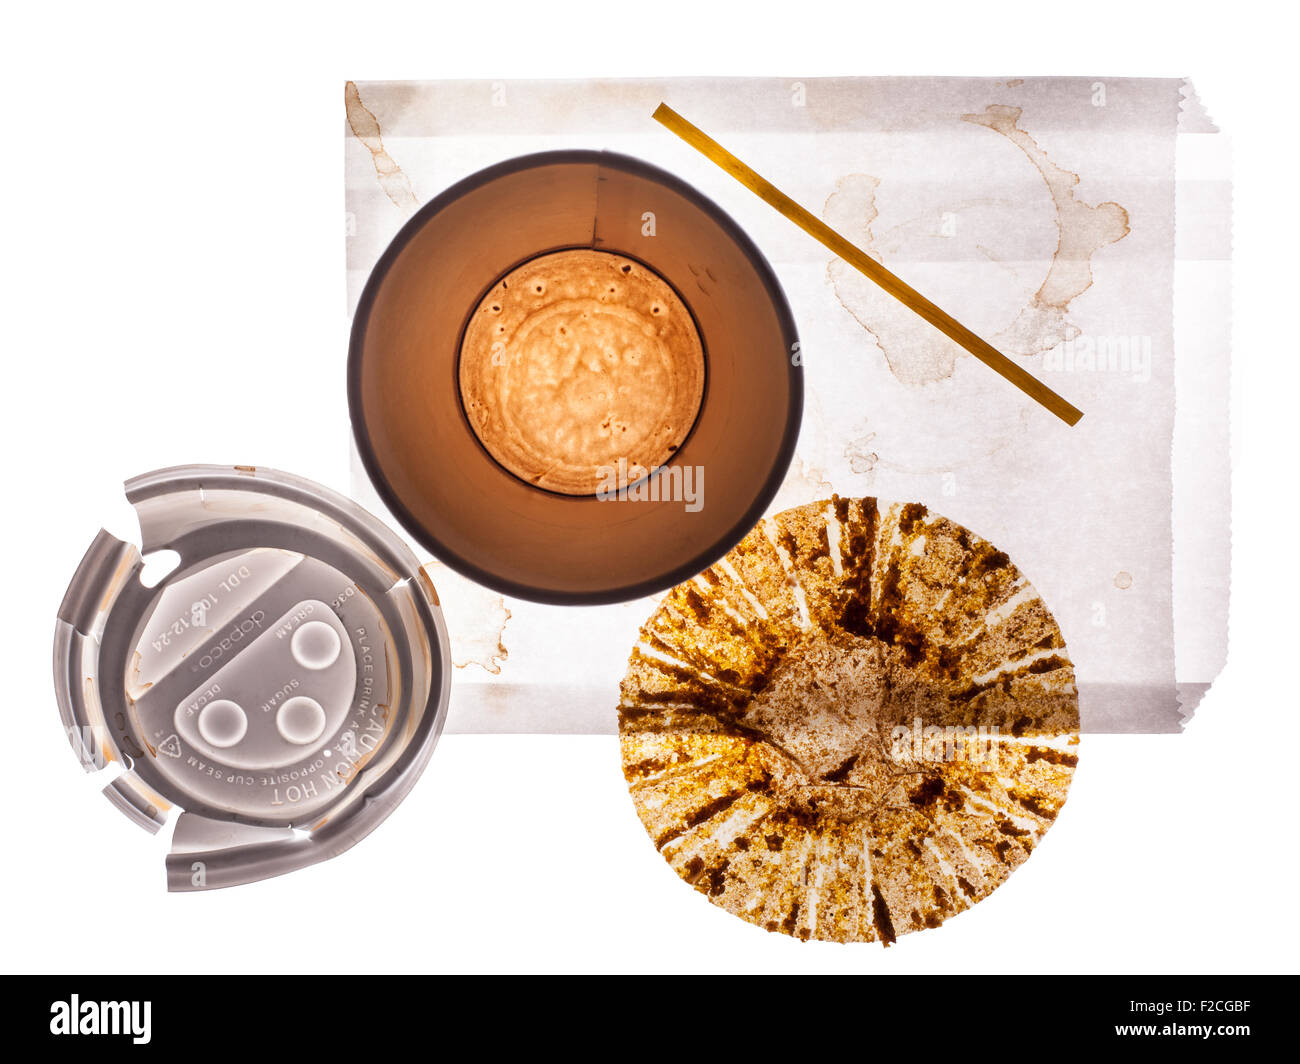 overhead view of empty paper coffee cup, lid, empty muffin wrapper, stir stick, white paper bag - Stock Image